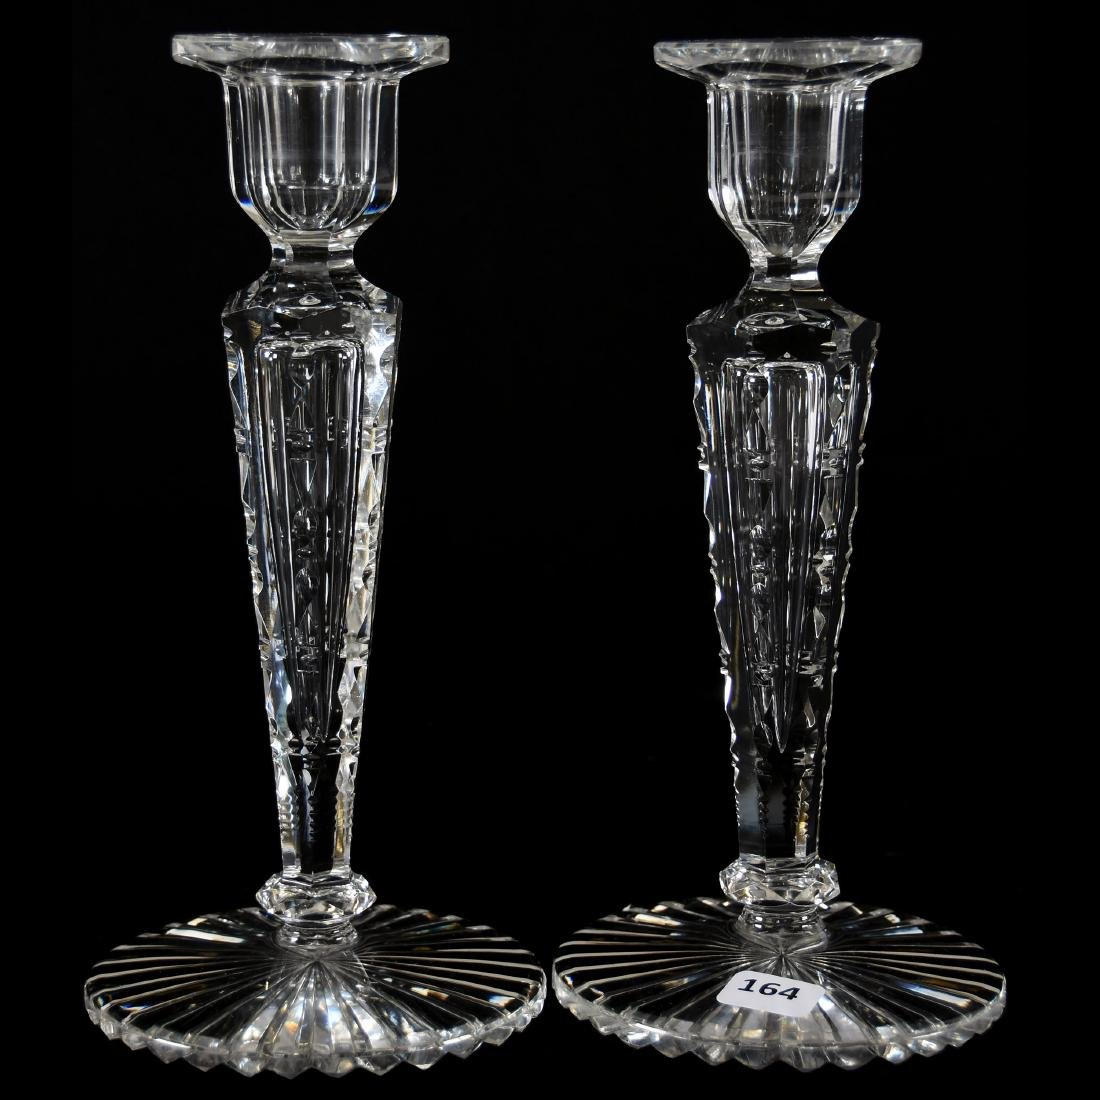 Pair Candlesticks, Signed Hawkes, Six-Sided Stem